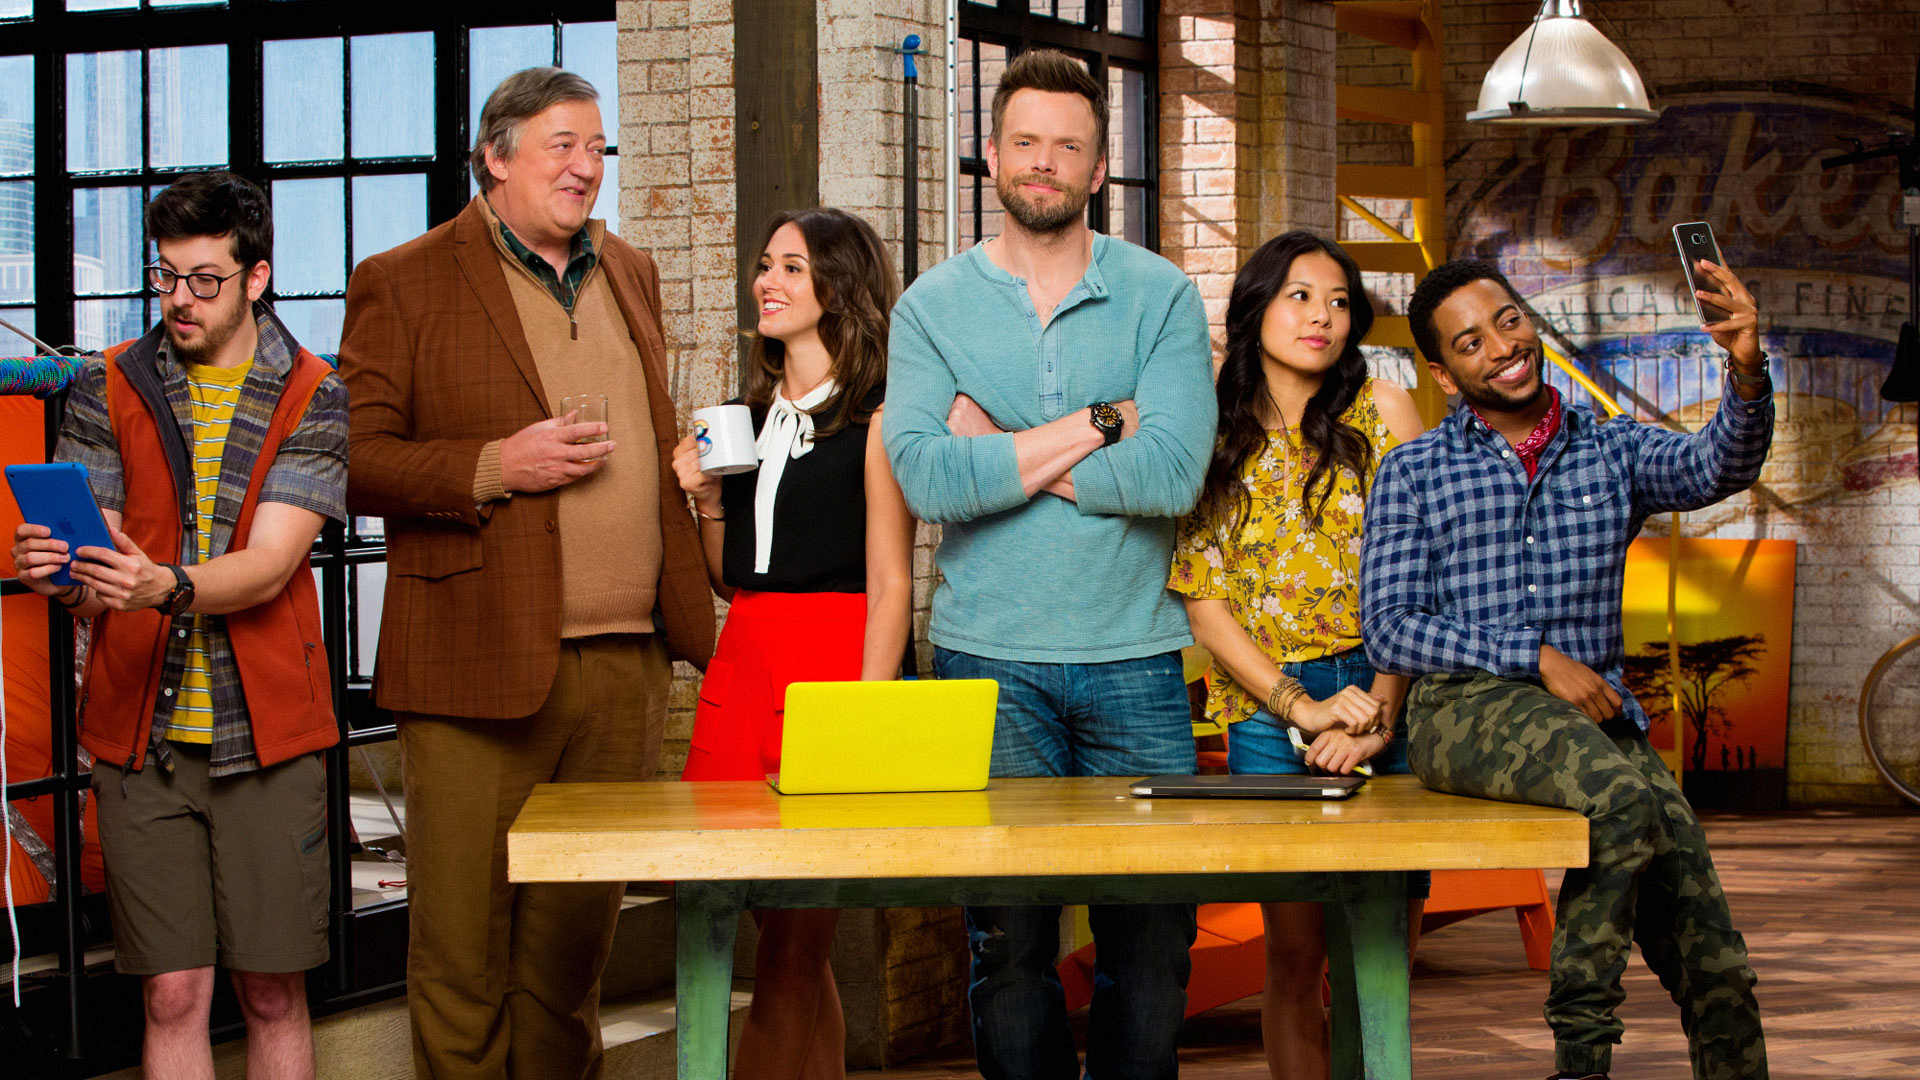 New series The Great Indoors premieres on Thursday, Oct. 27 at 8:30/7:30c.